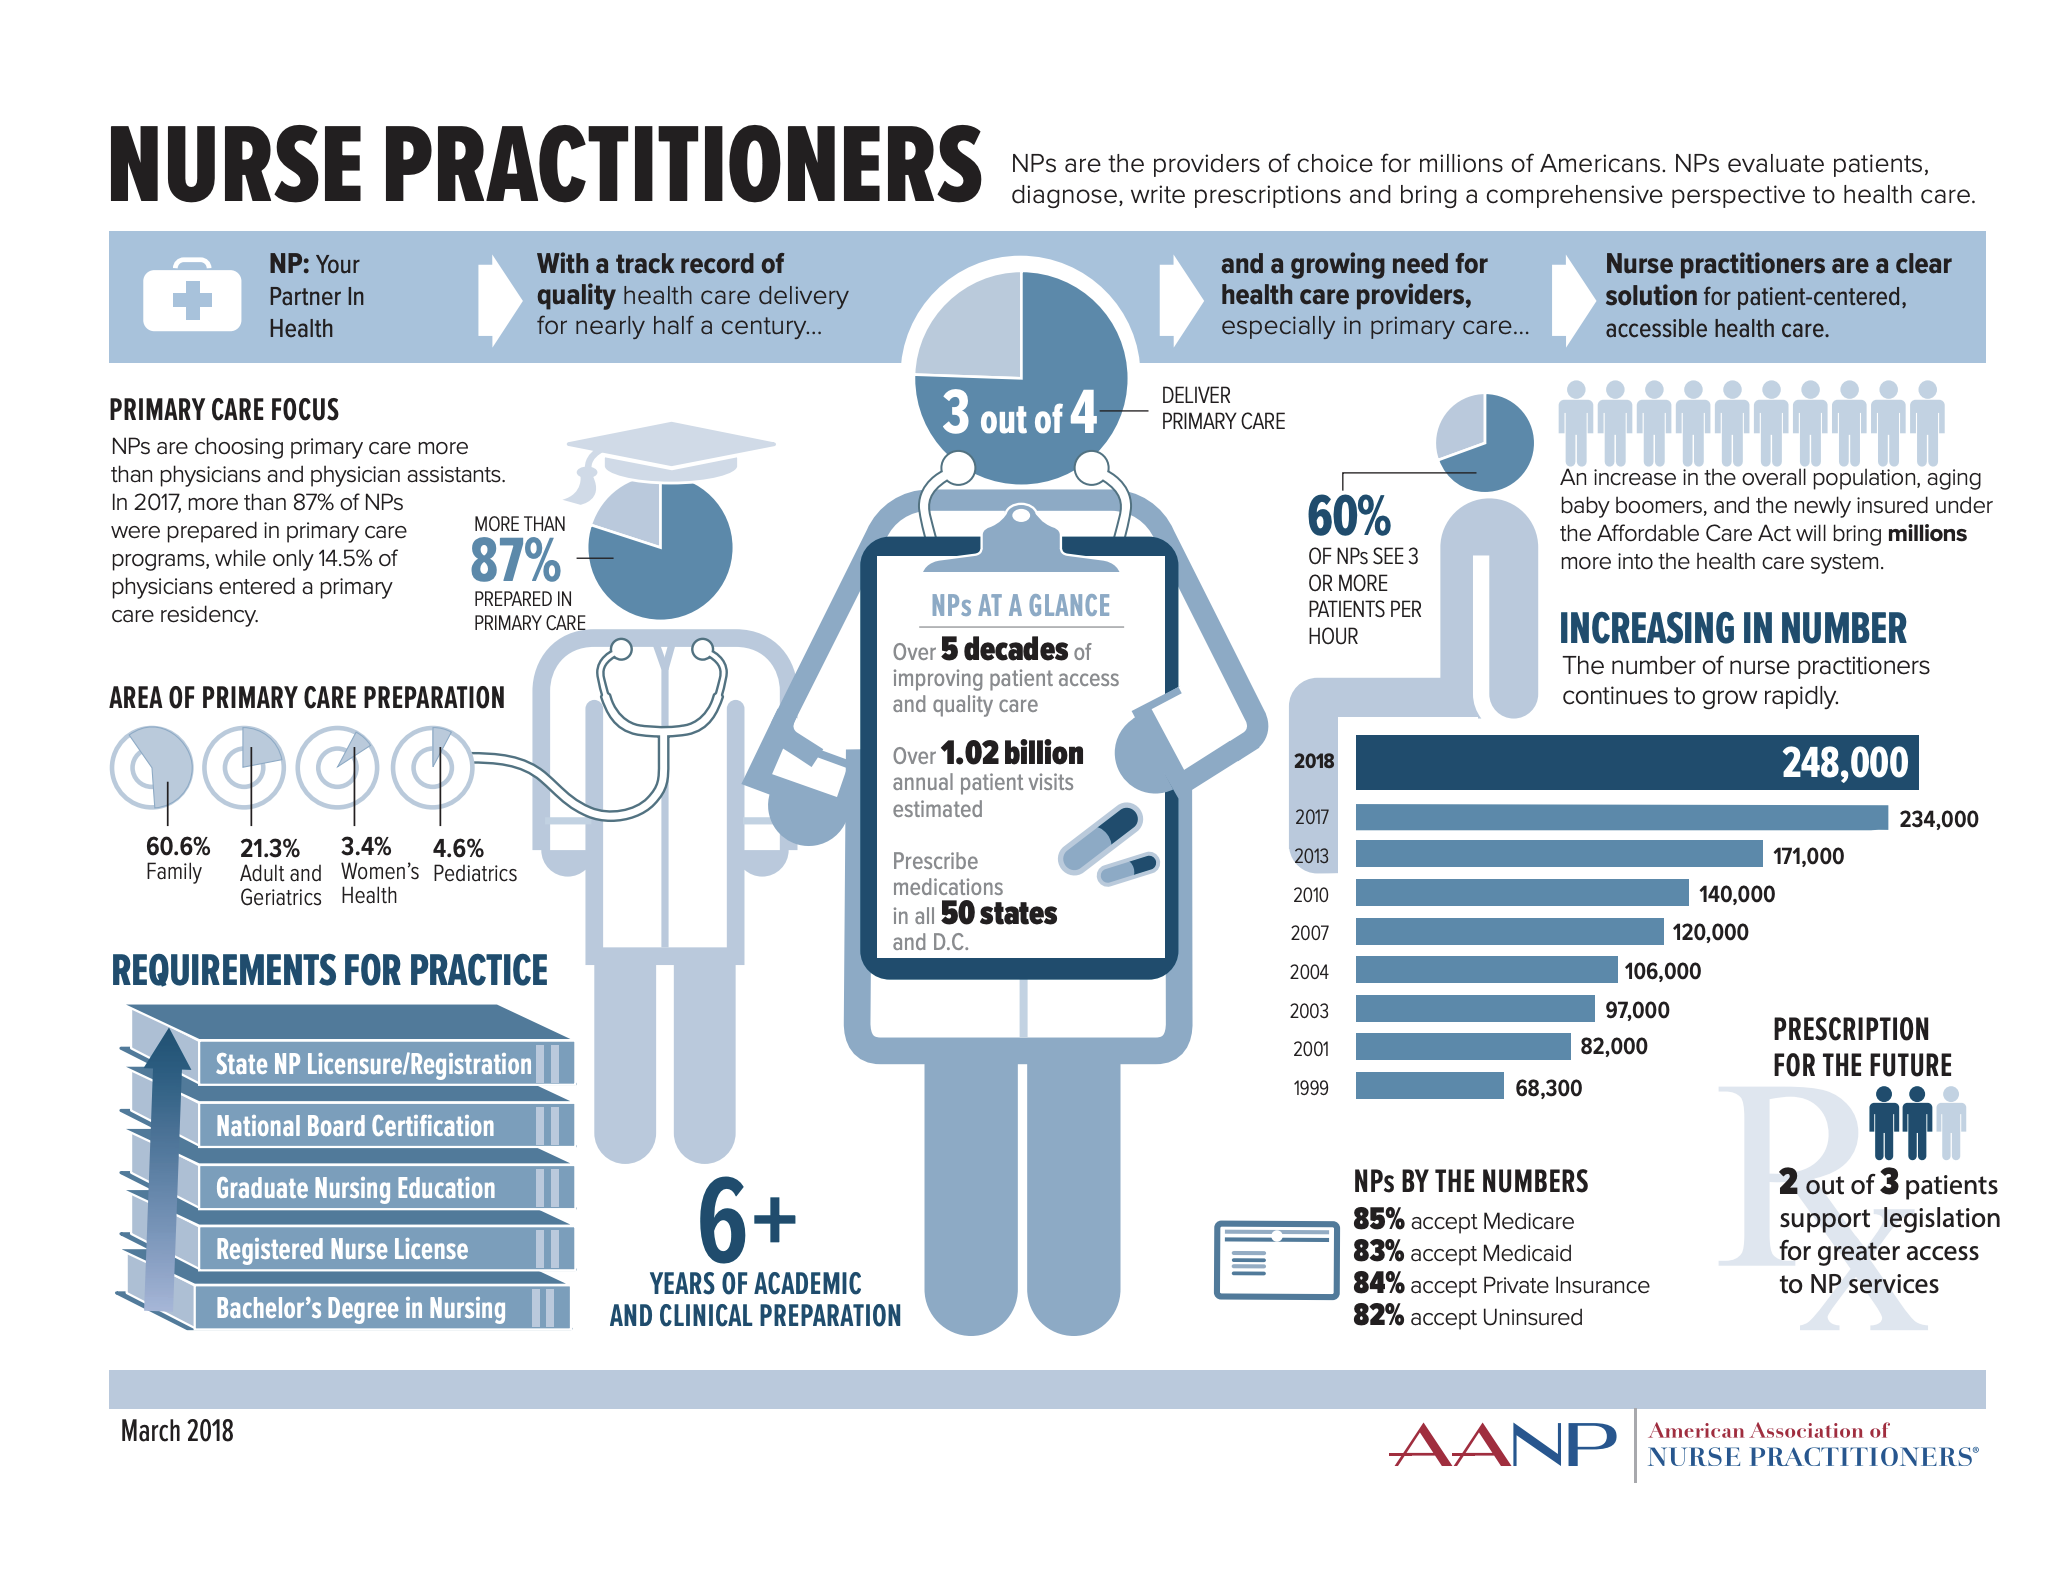 Becoming A Nurse Practitioner Everything You Need To Know Nurse Practitioner Infographic Nurse Practitioner Nurse Practitioner School